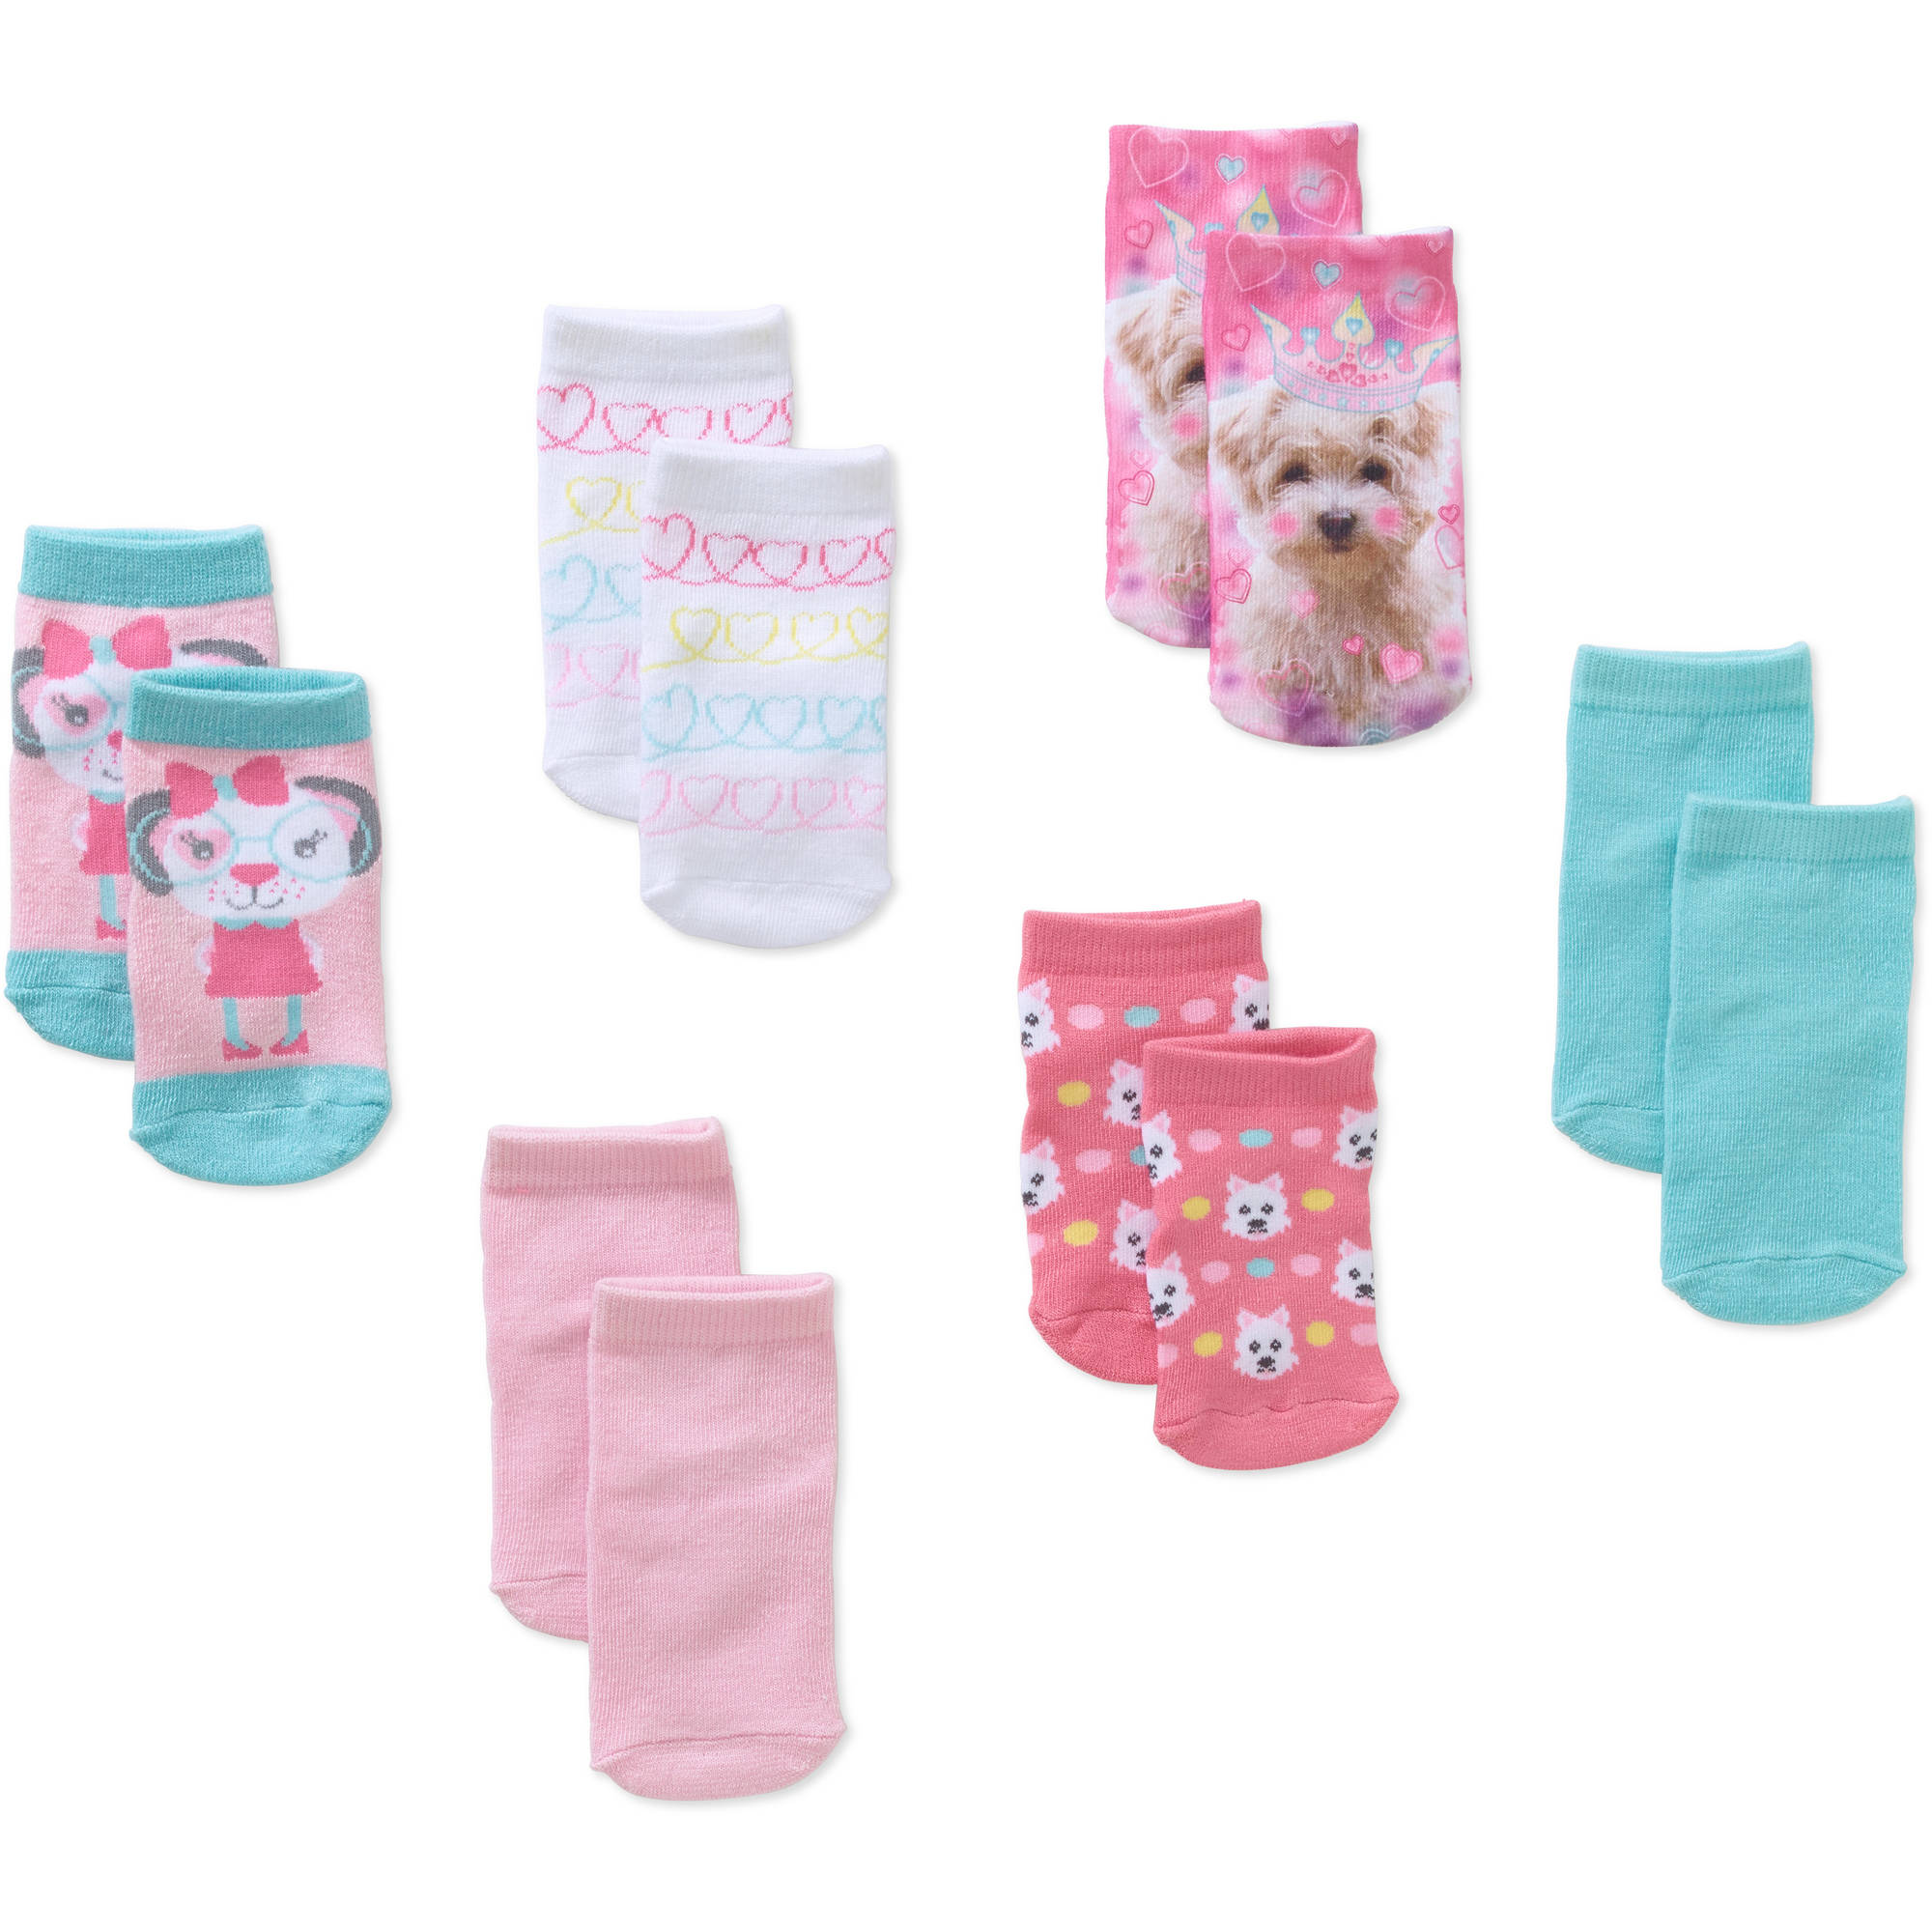 Garanimals Newborn to Toddler Baby Girl Shorty Dog Print Socks, 6-Pack Ages 0-5T